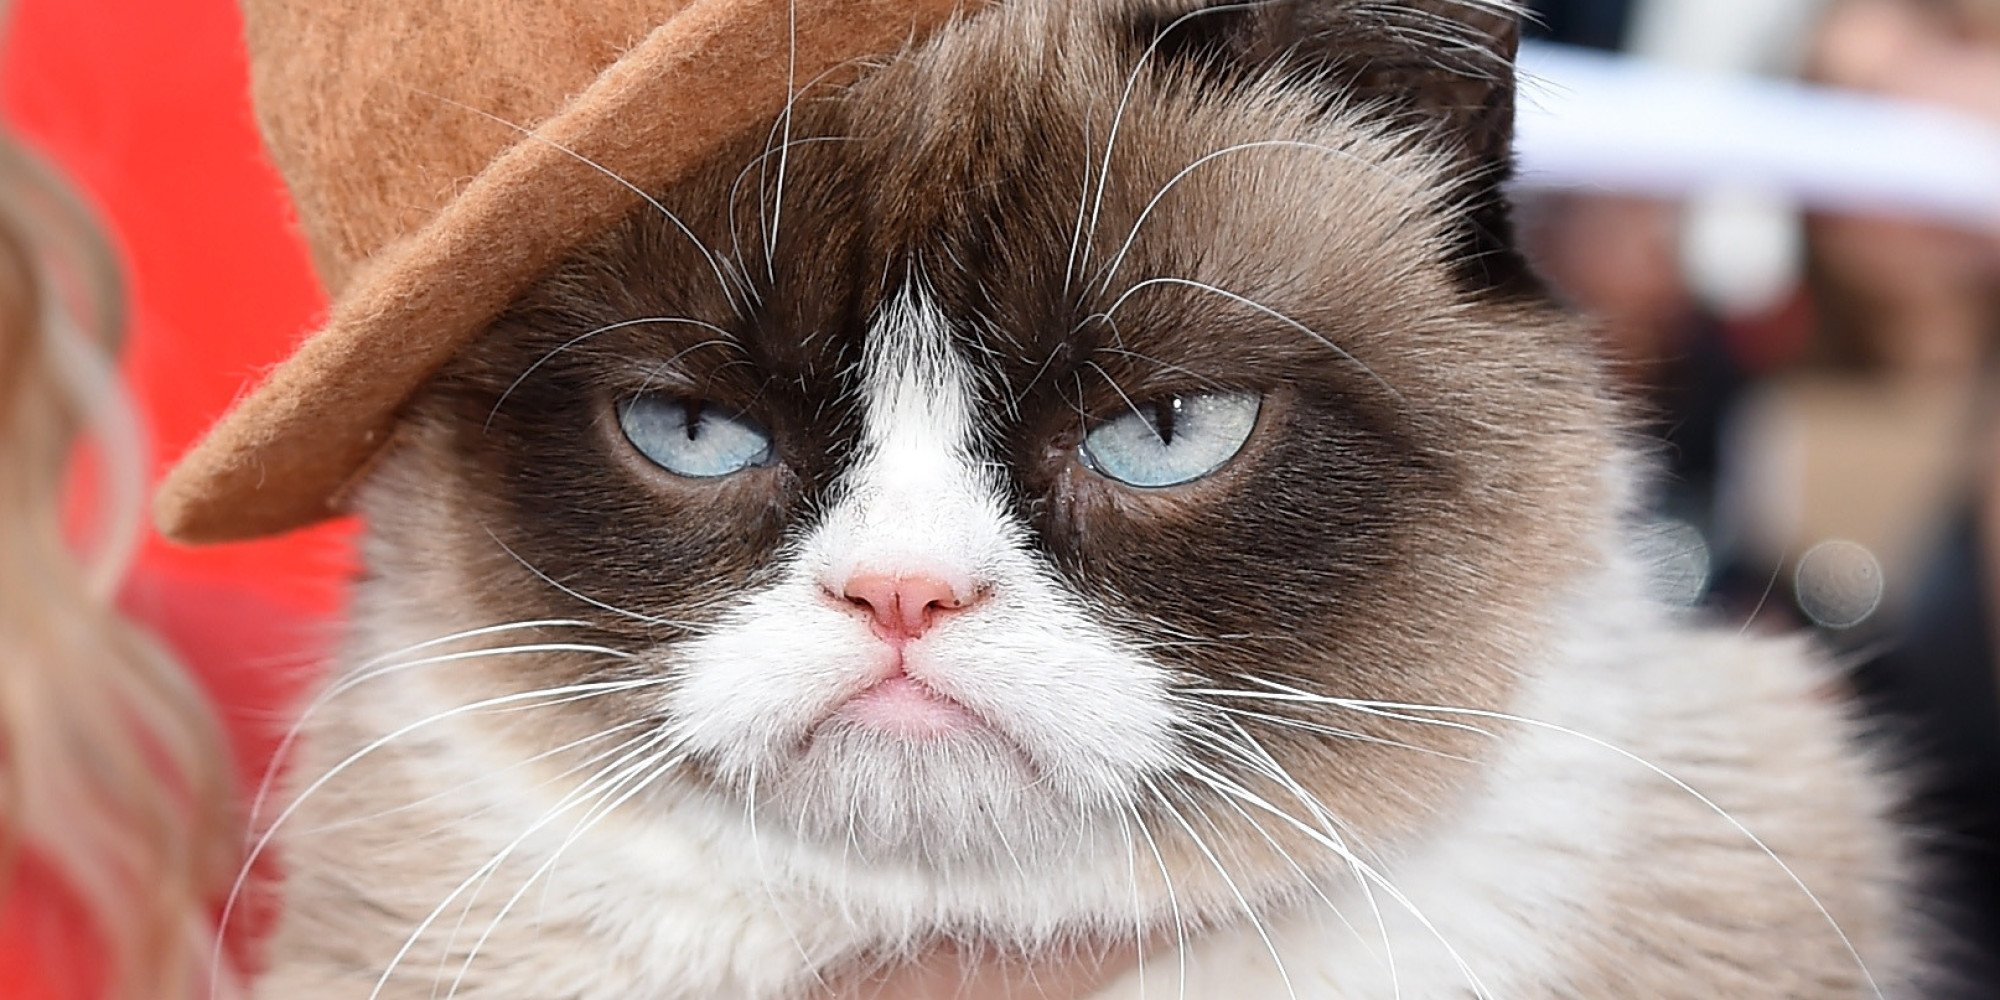 Is Grumpy Cat Copyrighted